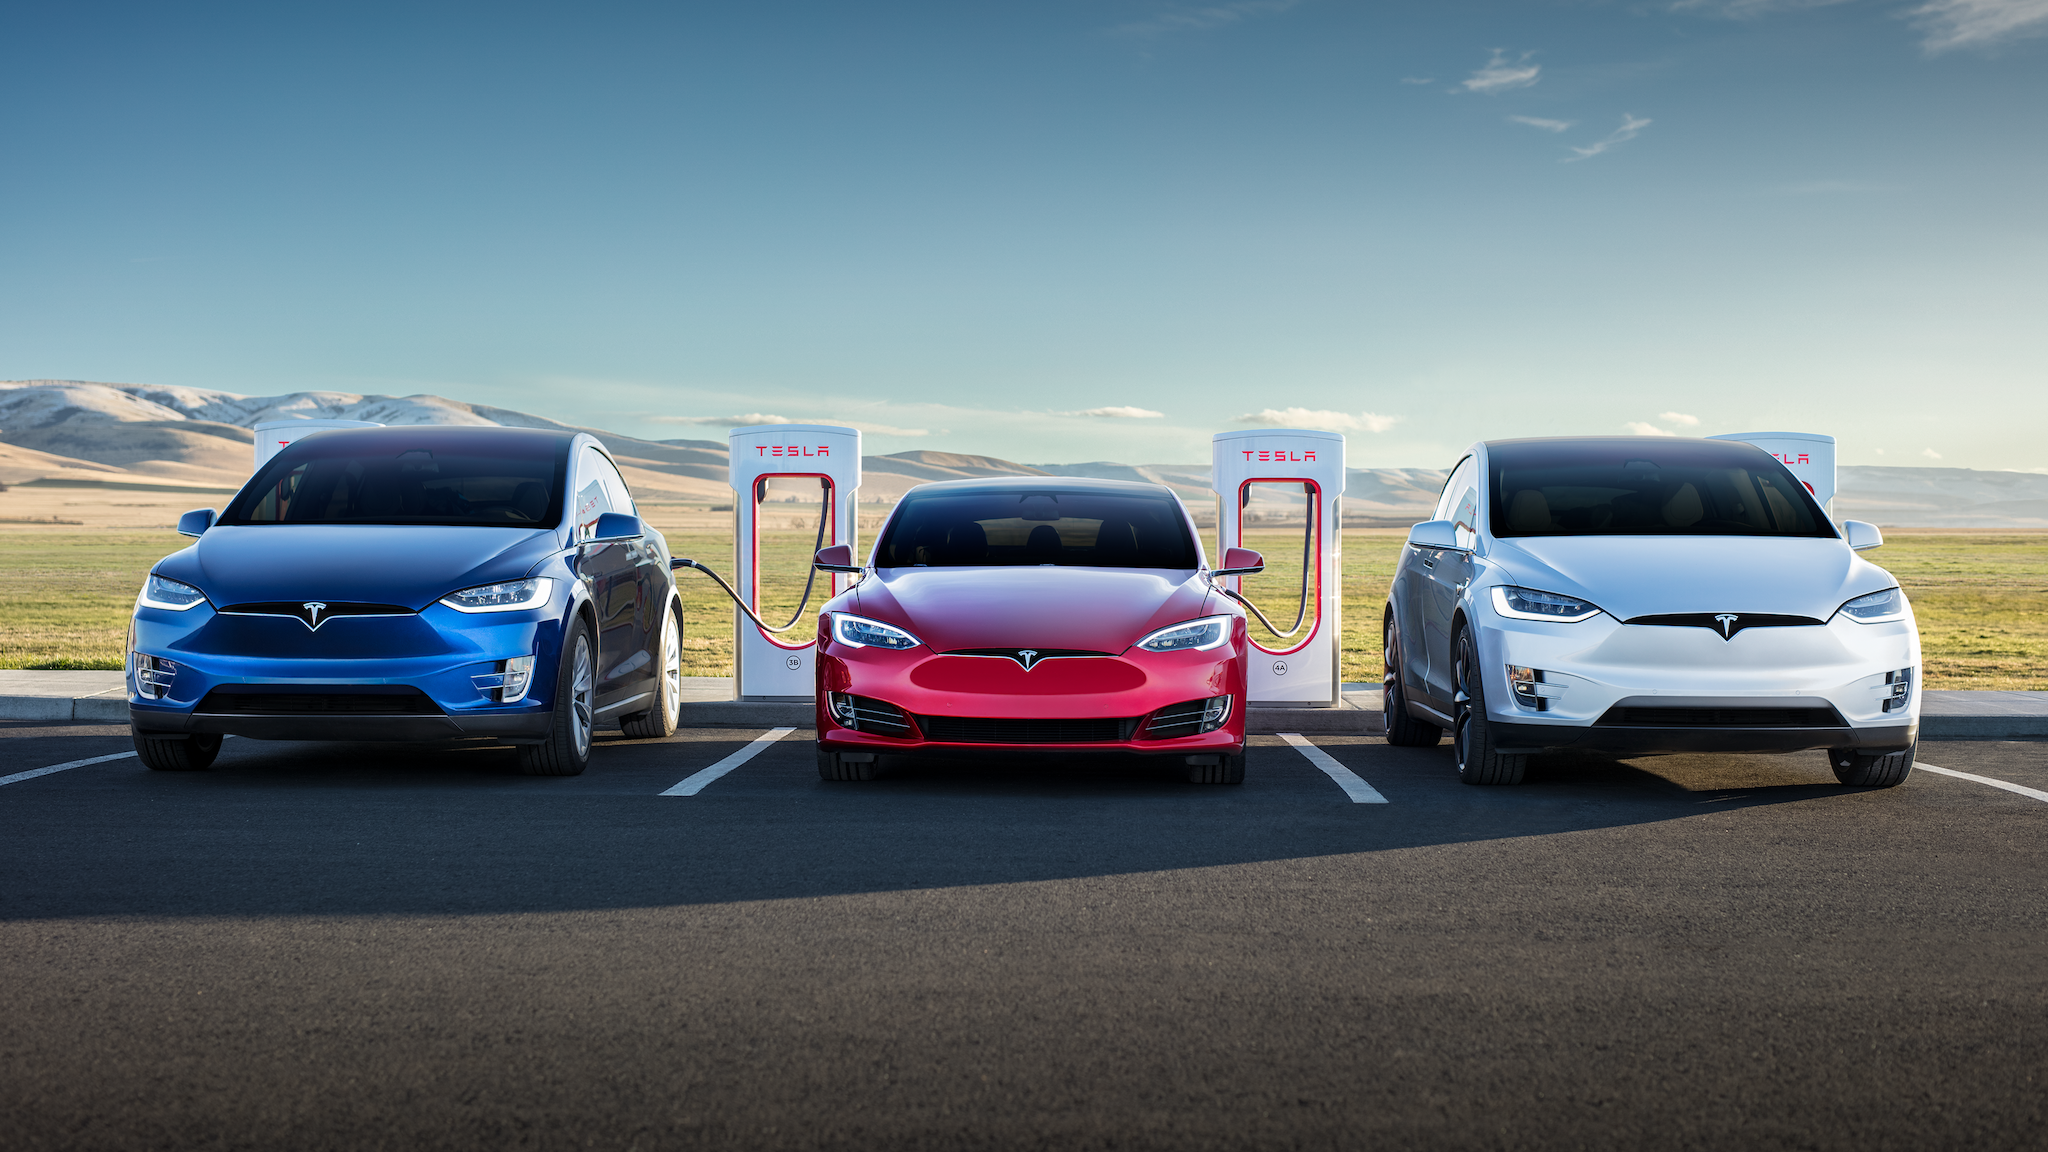 months of bad news has battered tesla's image with customers, poll